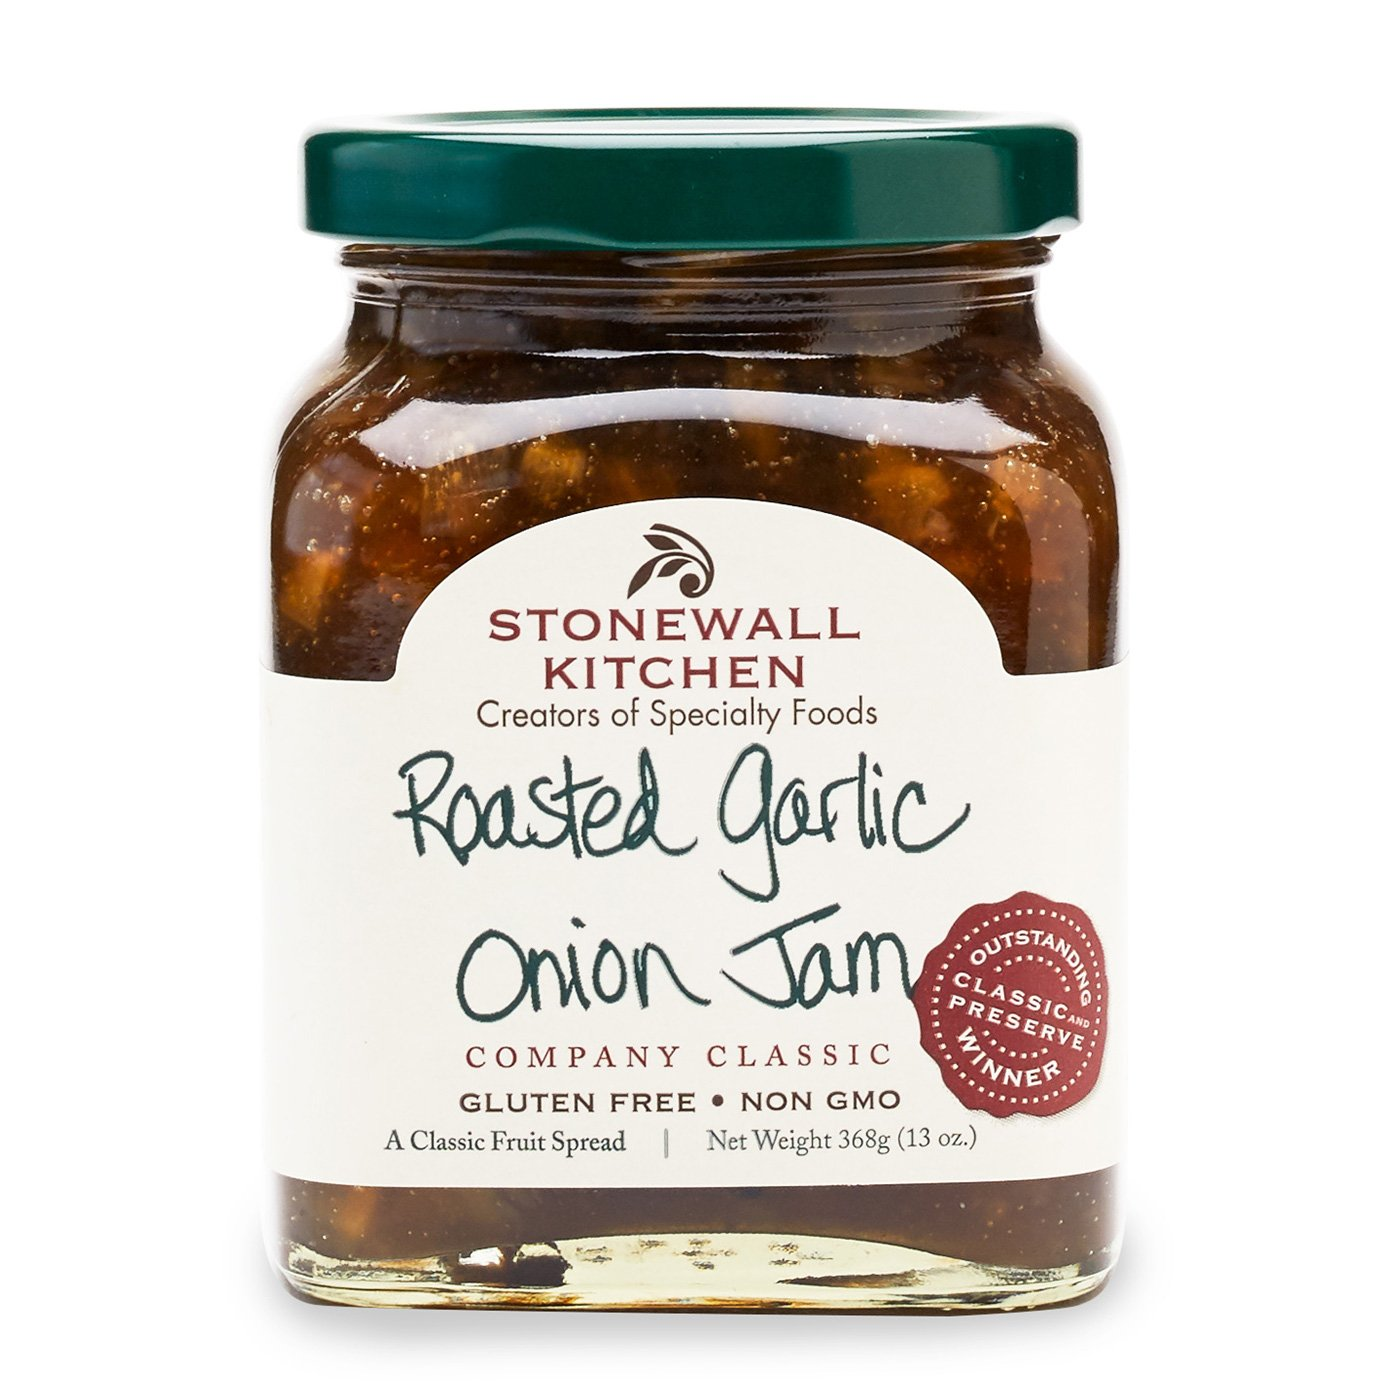 Stonewall Kitchen Roasted Garlic Onion Jam, 13 Ounces